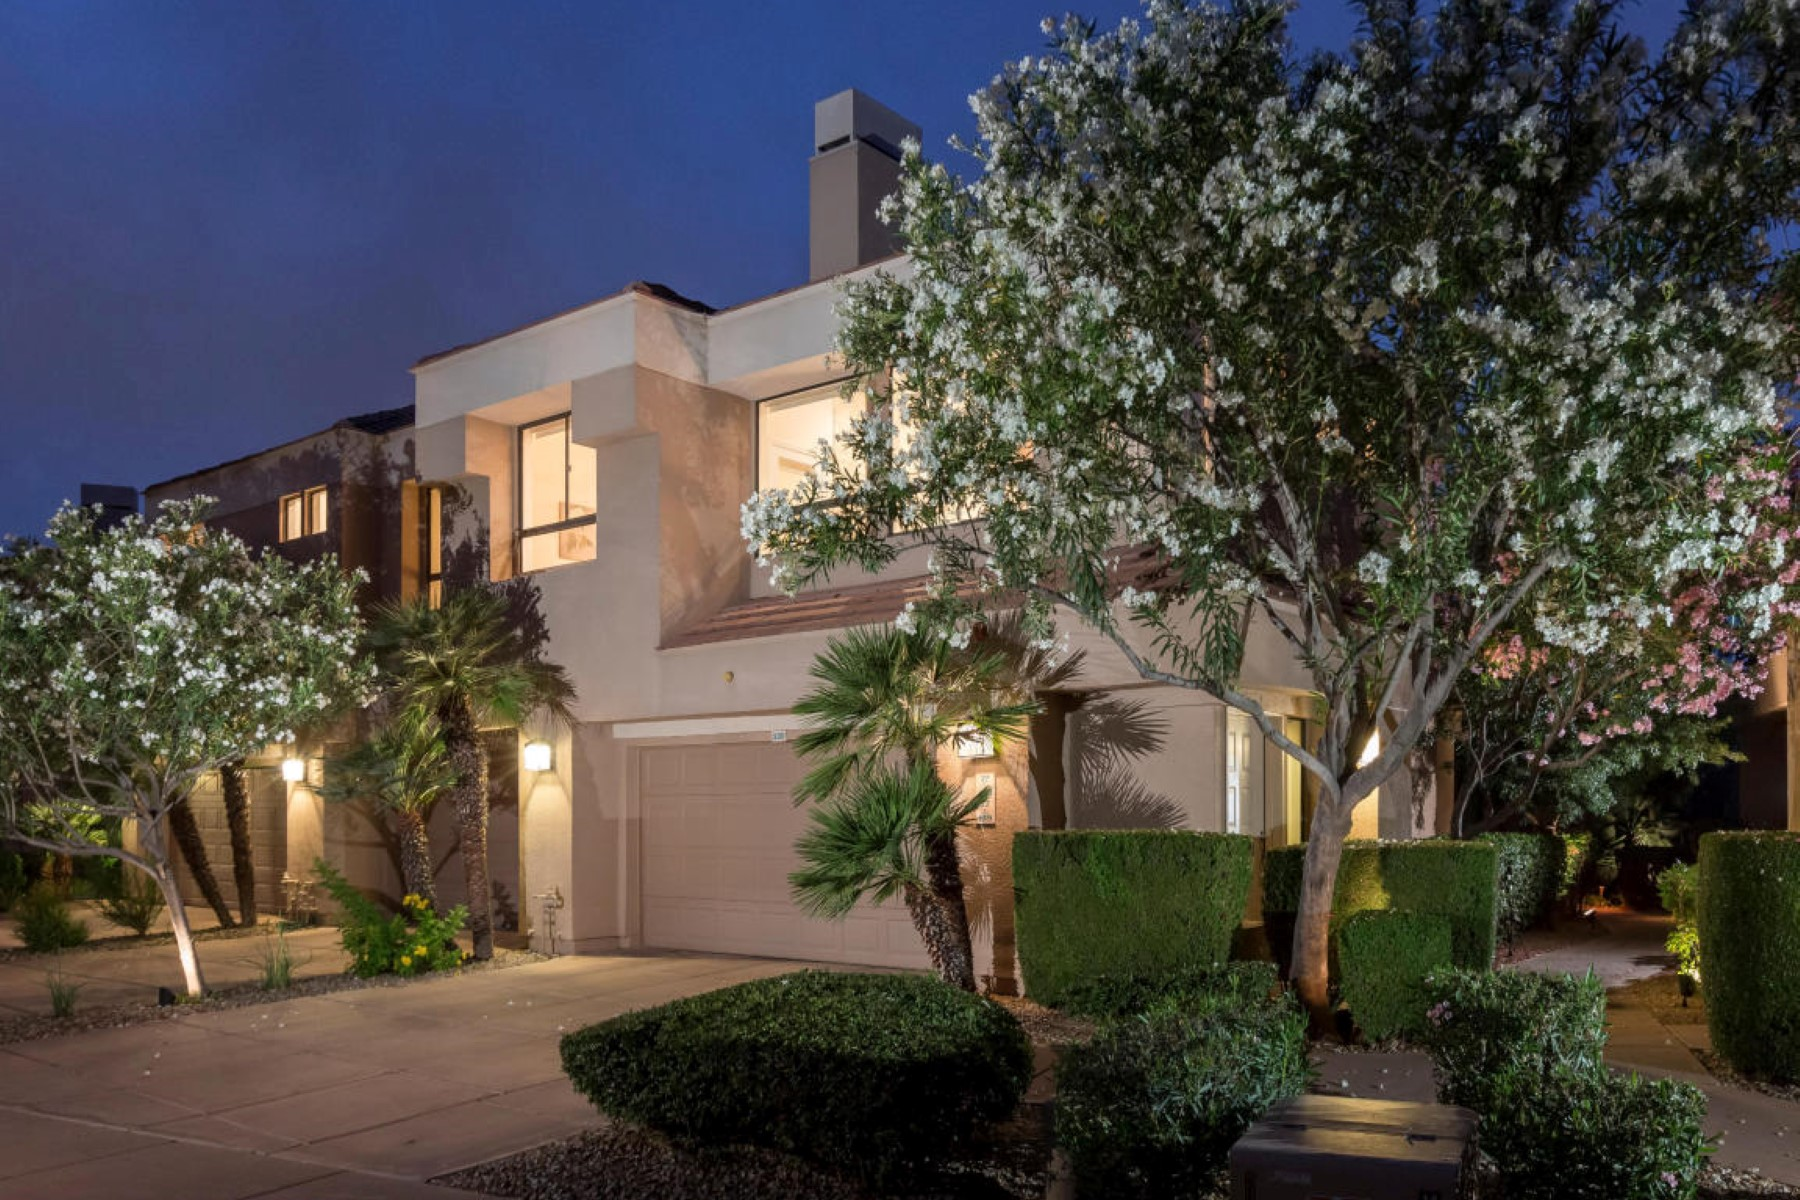 Appartement pour l Vente à Remodel Condo in sought after and luxurious Gainey Ranch Scottsdale 7222 E Gainey Ranch Rd #239 Scottsdale, Arizona 85258 États-Unis